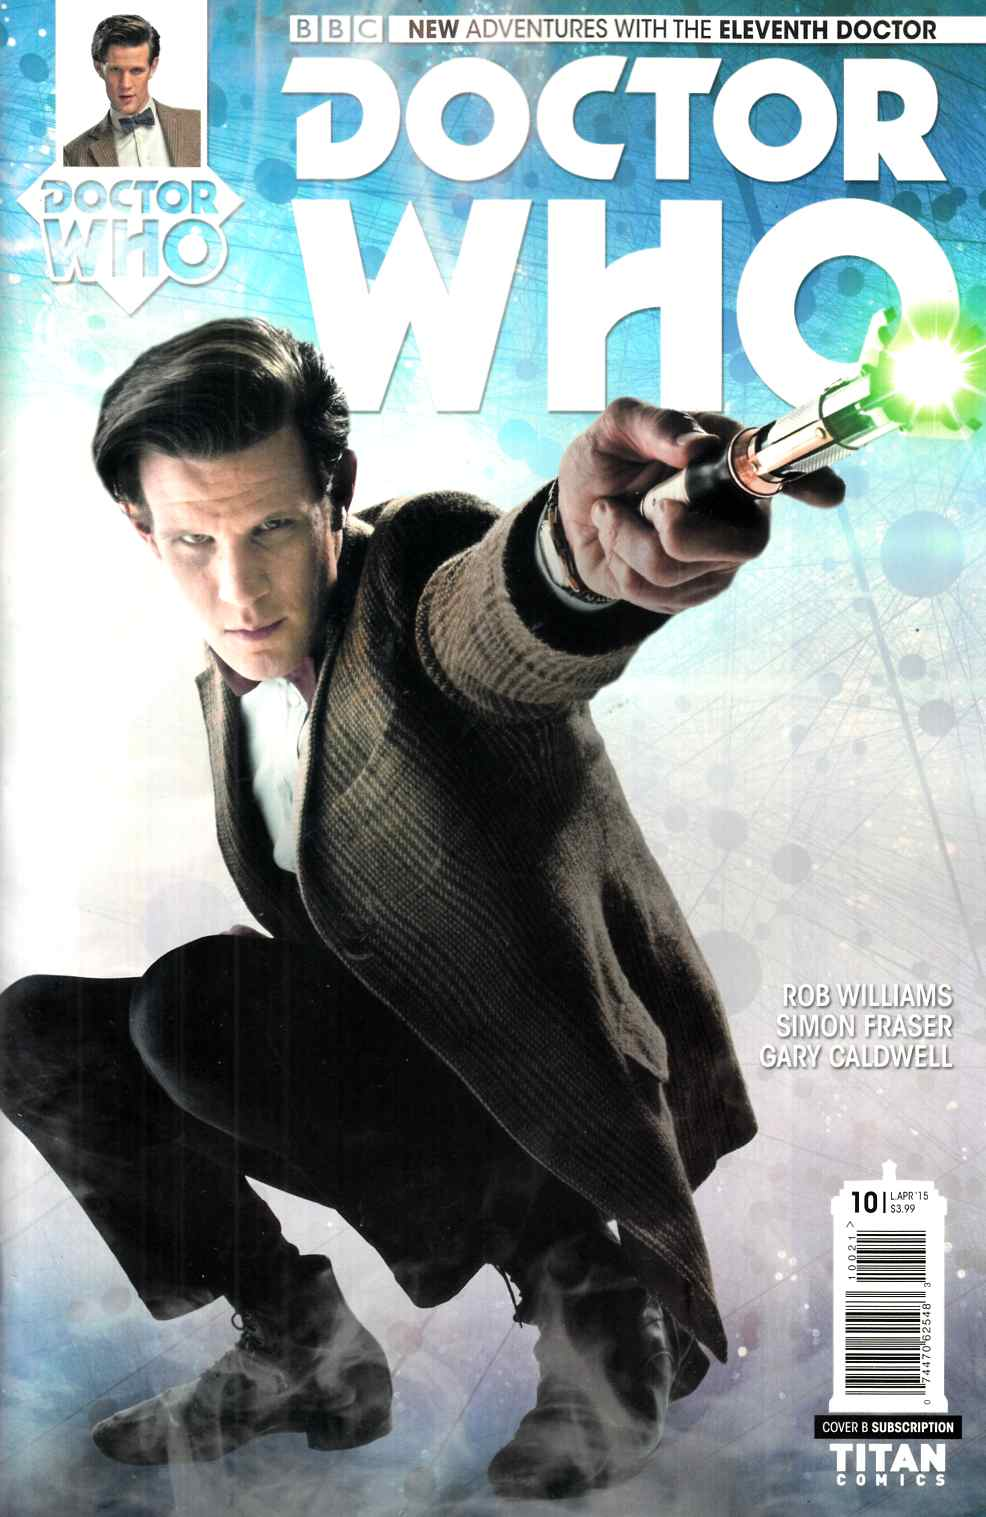 Doctor Who 11th Doctor #10 Subscription Photo Cover [Titan Comic] THUMBNAIL